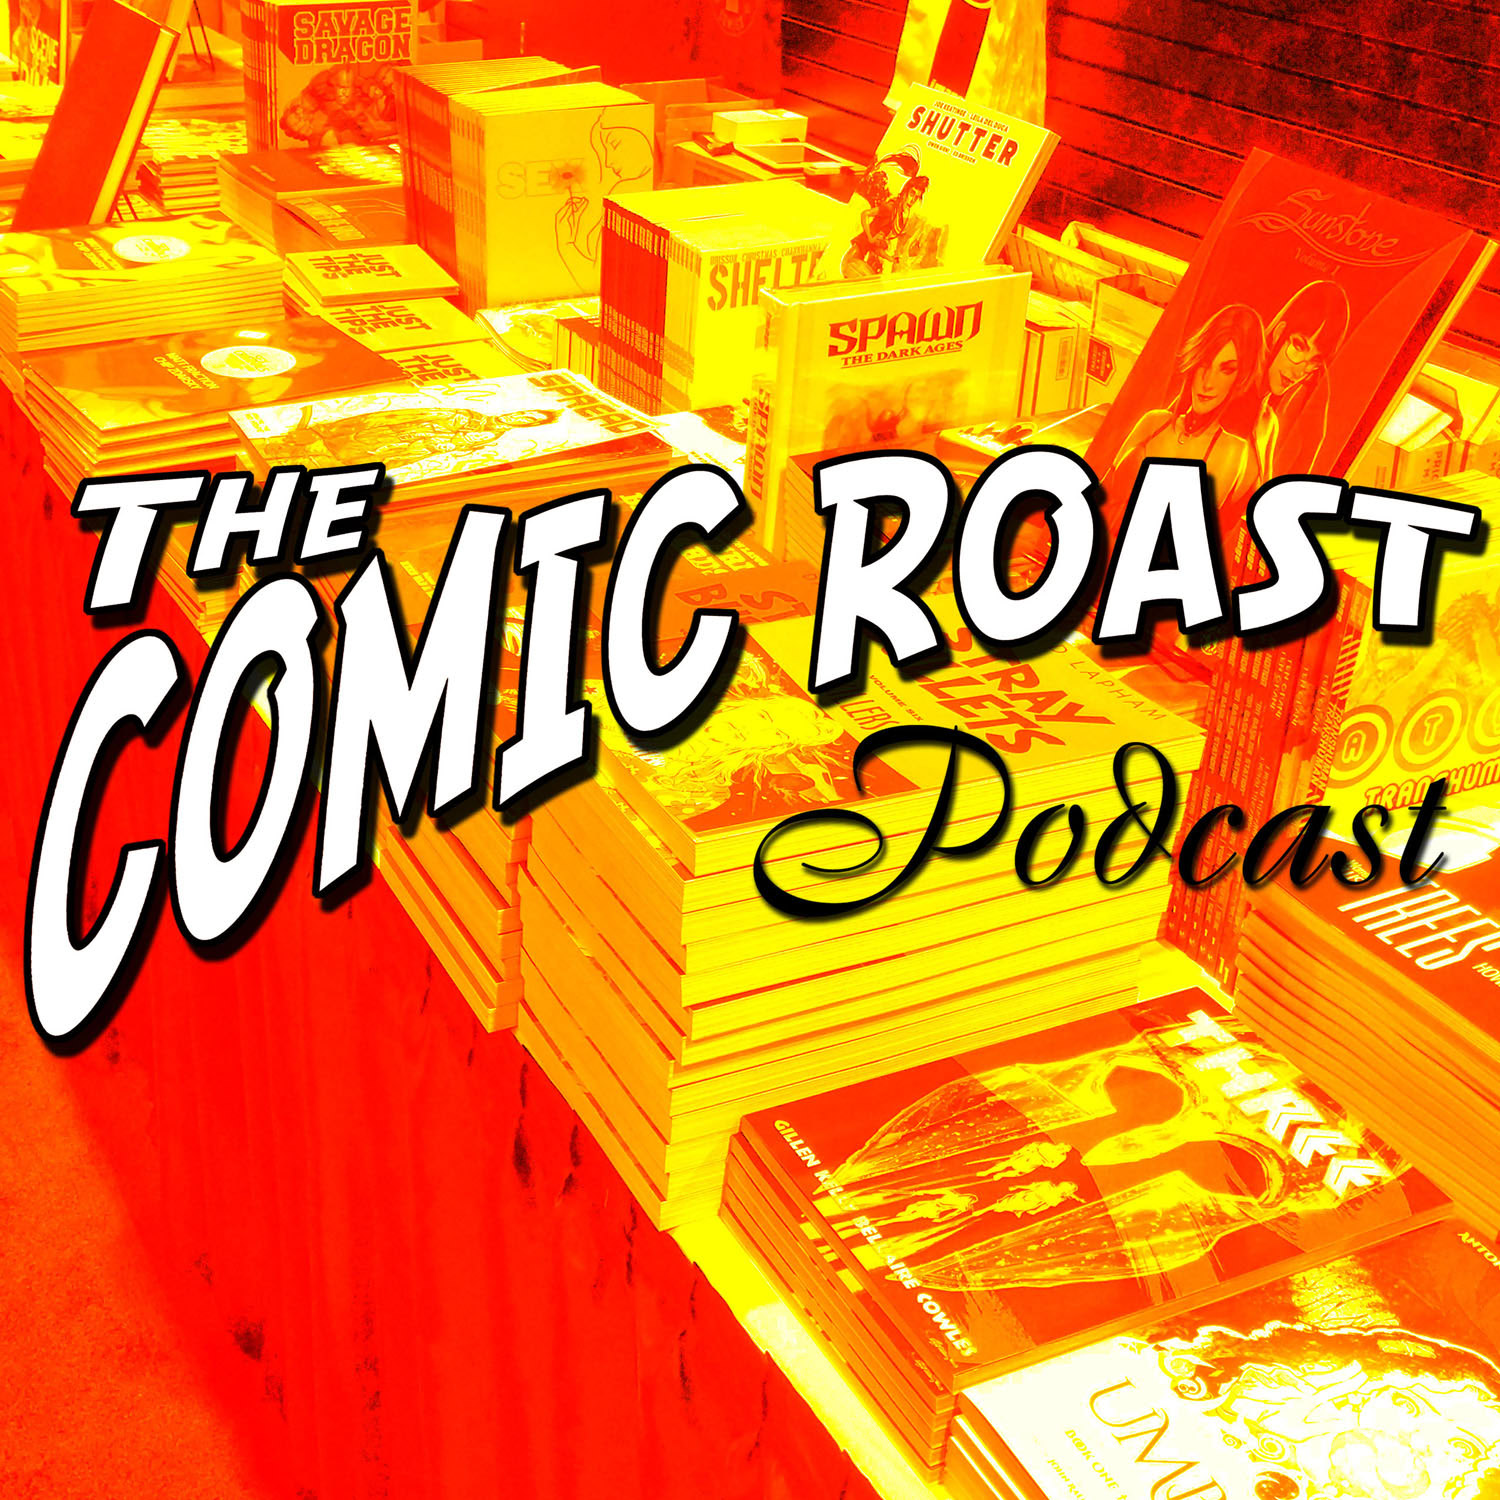 The Comic Roast